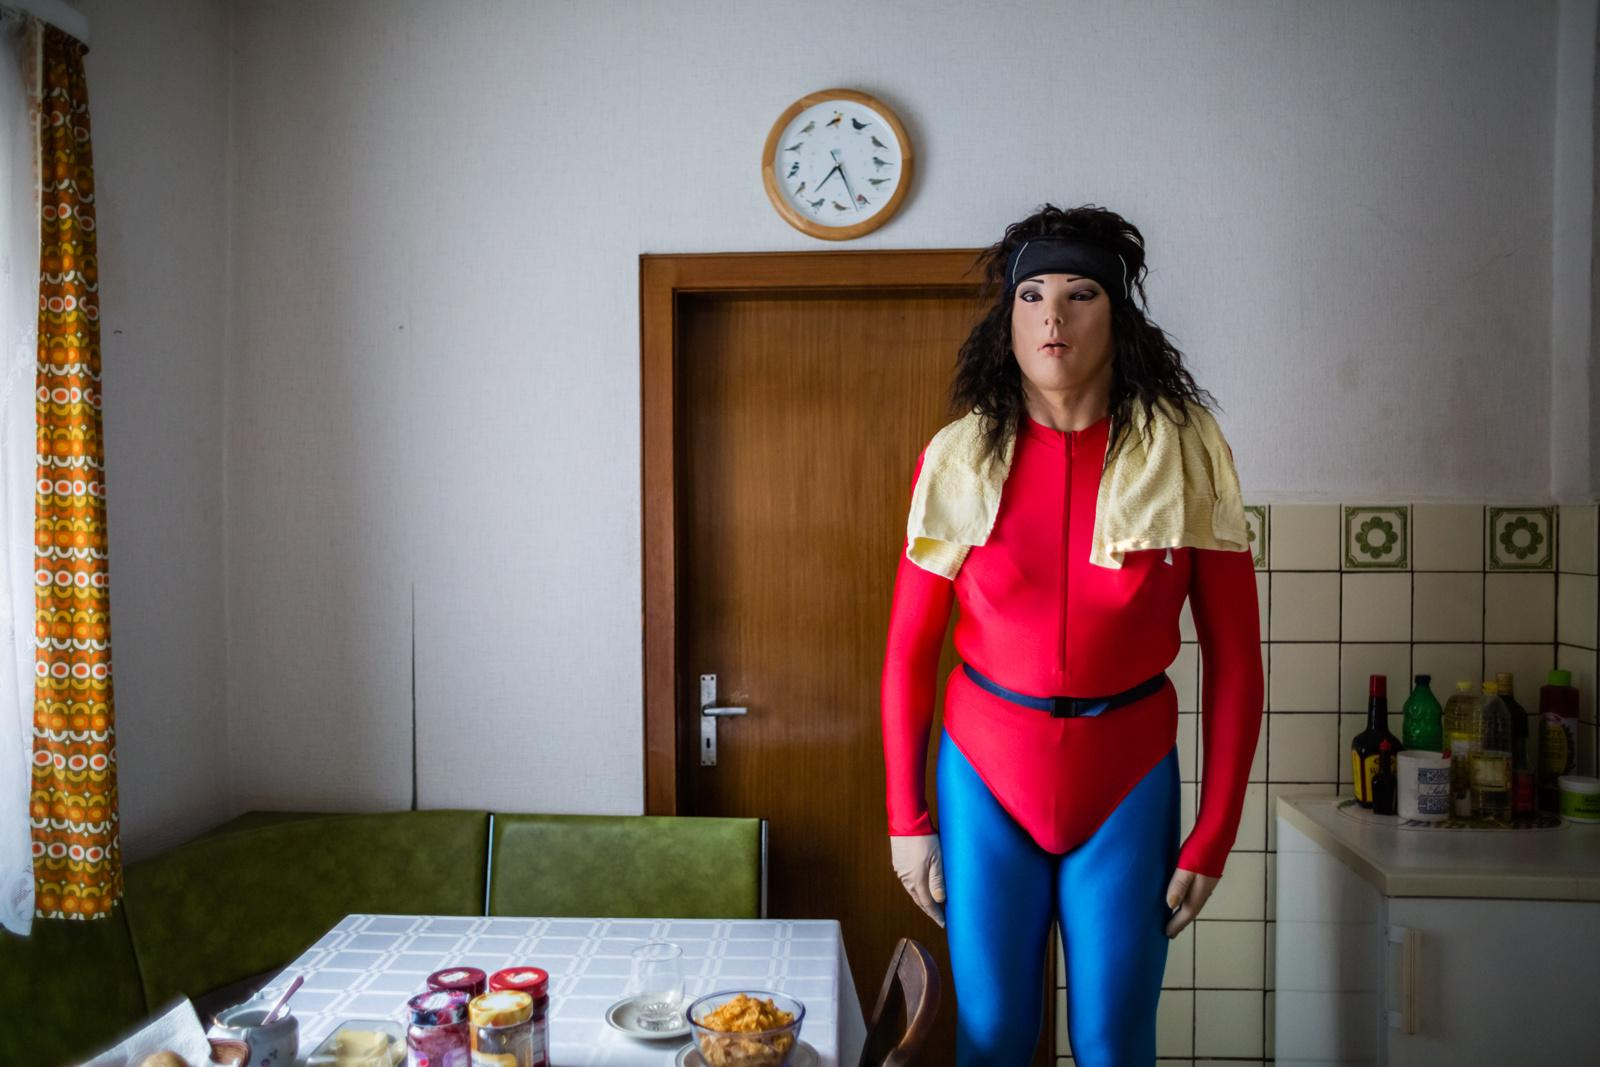 """HANNOVER, GERMANY - AUGUST 23, 2015: Female masker Chris, 49, dressed as his alter ego Romy von Dornfelder, August 23, 2015 in Hannover, Germany. Being a heterosexual and cisgender man, he has six female alter egos and four male ones, each with their own characteristics and life-stories, which he lives out through photo shoots. """"My passion for female masking arose from my weakness for lycra. 1981, when I was 15 years old, aerobics came into fashion and I was jealous of girls being able to wear much more chic clothes than boys could. When finally skintight sportsuits for men were introduced, I got one as a present for my 16th birthday and have been wearing them since. The masks came in addition six years ago and serve as a field for experimentation. Wearing the mask, I don't feel like a different person, that only takes effect when I look at the photos that I take of these. I then see the fictional characters I create, reflecting a counterpart of myself, a desired partner or something that I lack but wish for."""" - Female masker Chris, 49, heterosexual man, alias Romy von Dornfelder"""